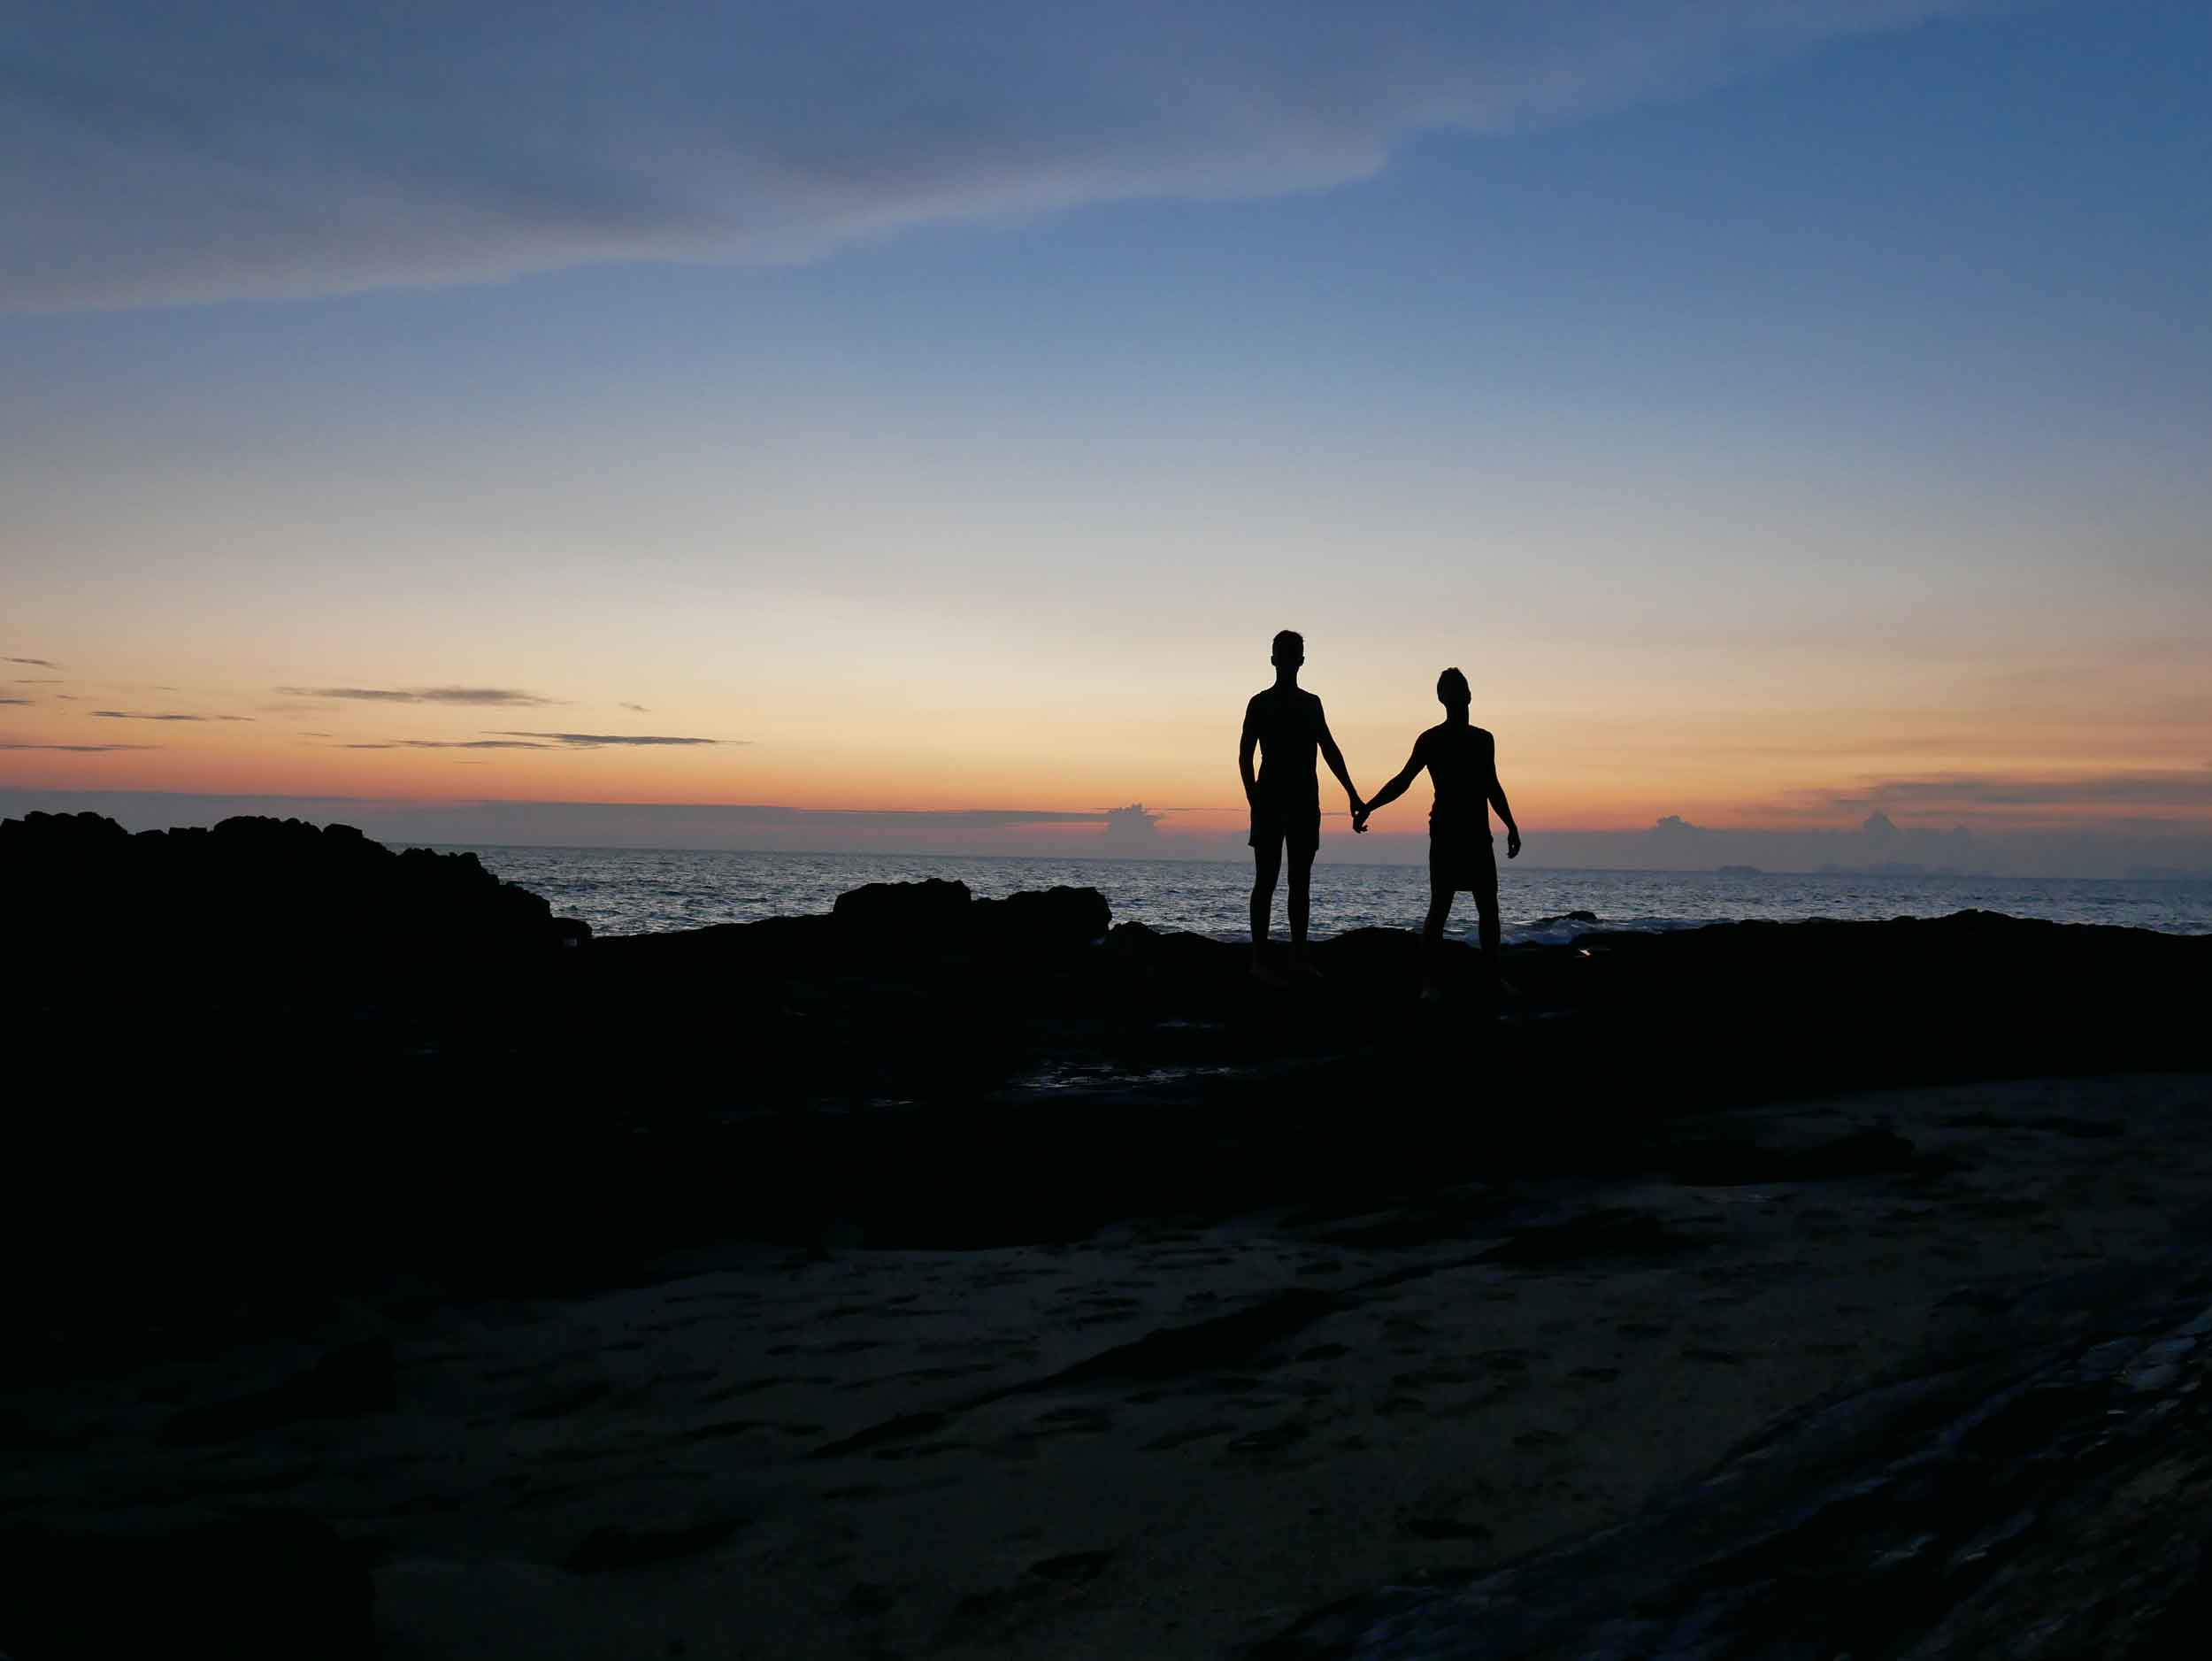 Ko Lanta is a beautiful place to recharge and take in the tranquil surroundings.